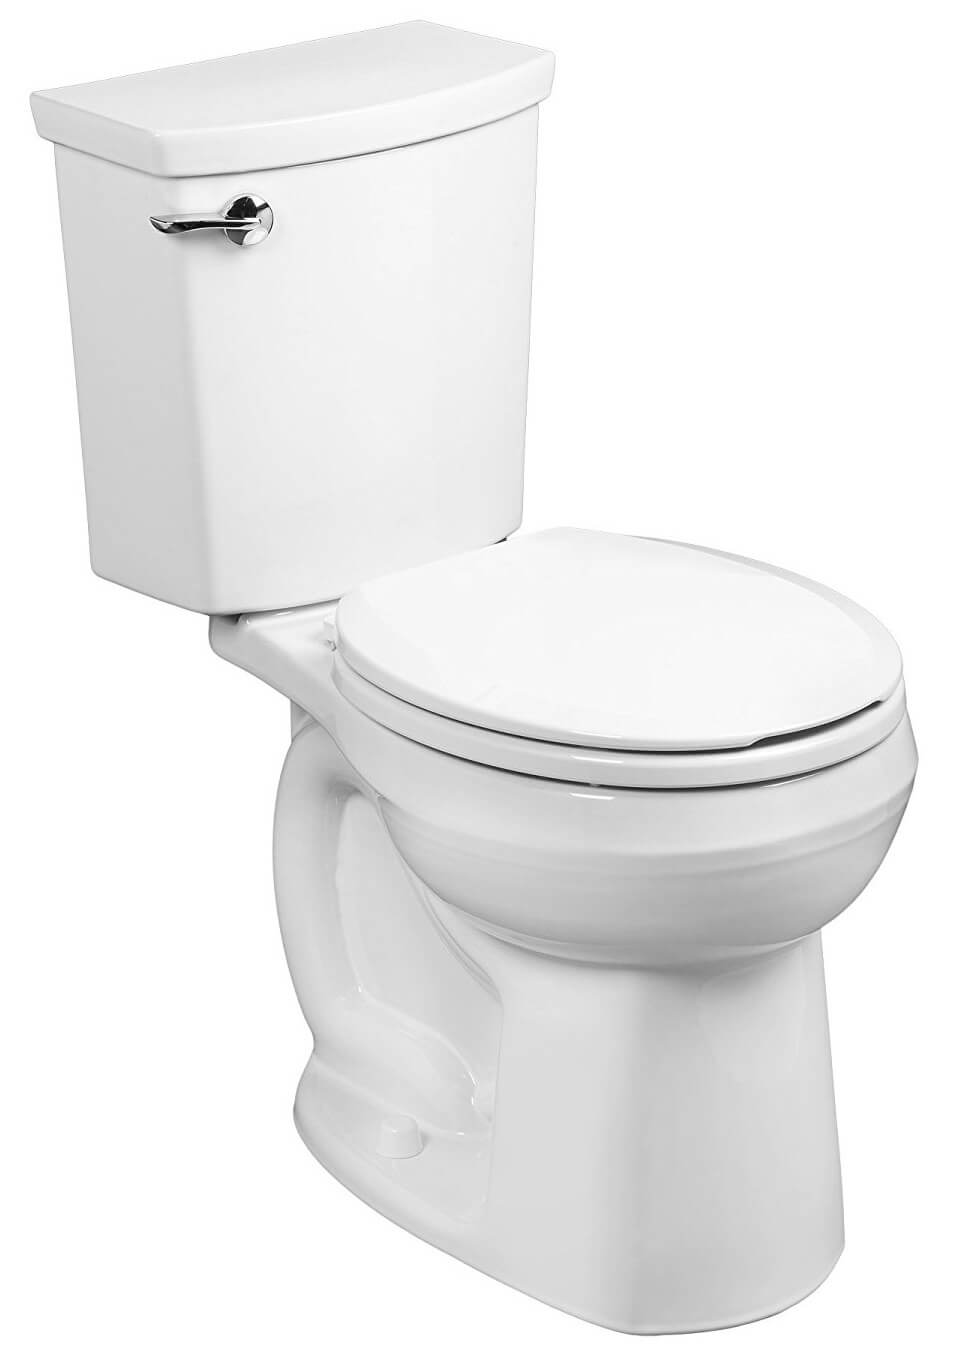 Recommended Best Flushing Toilet Of 2018 Guide Amp Reviews